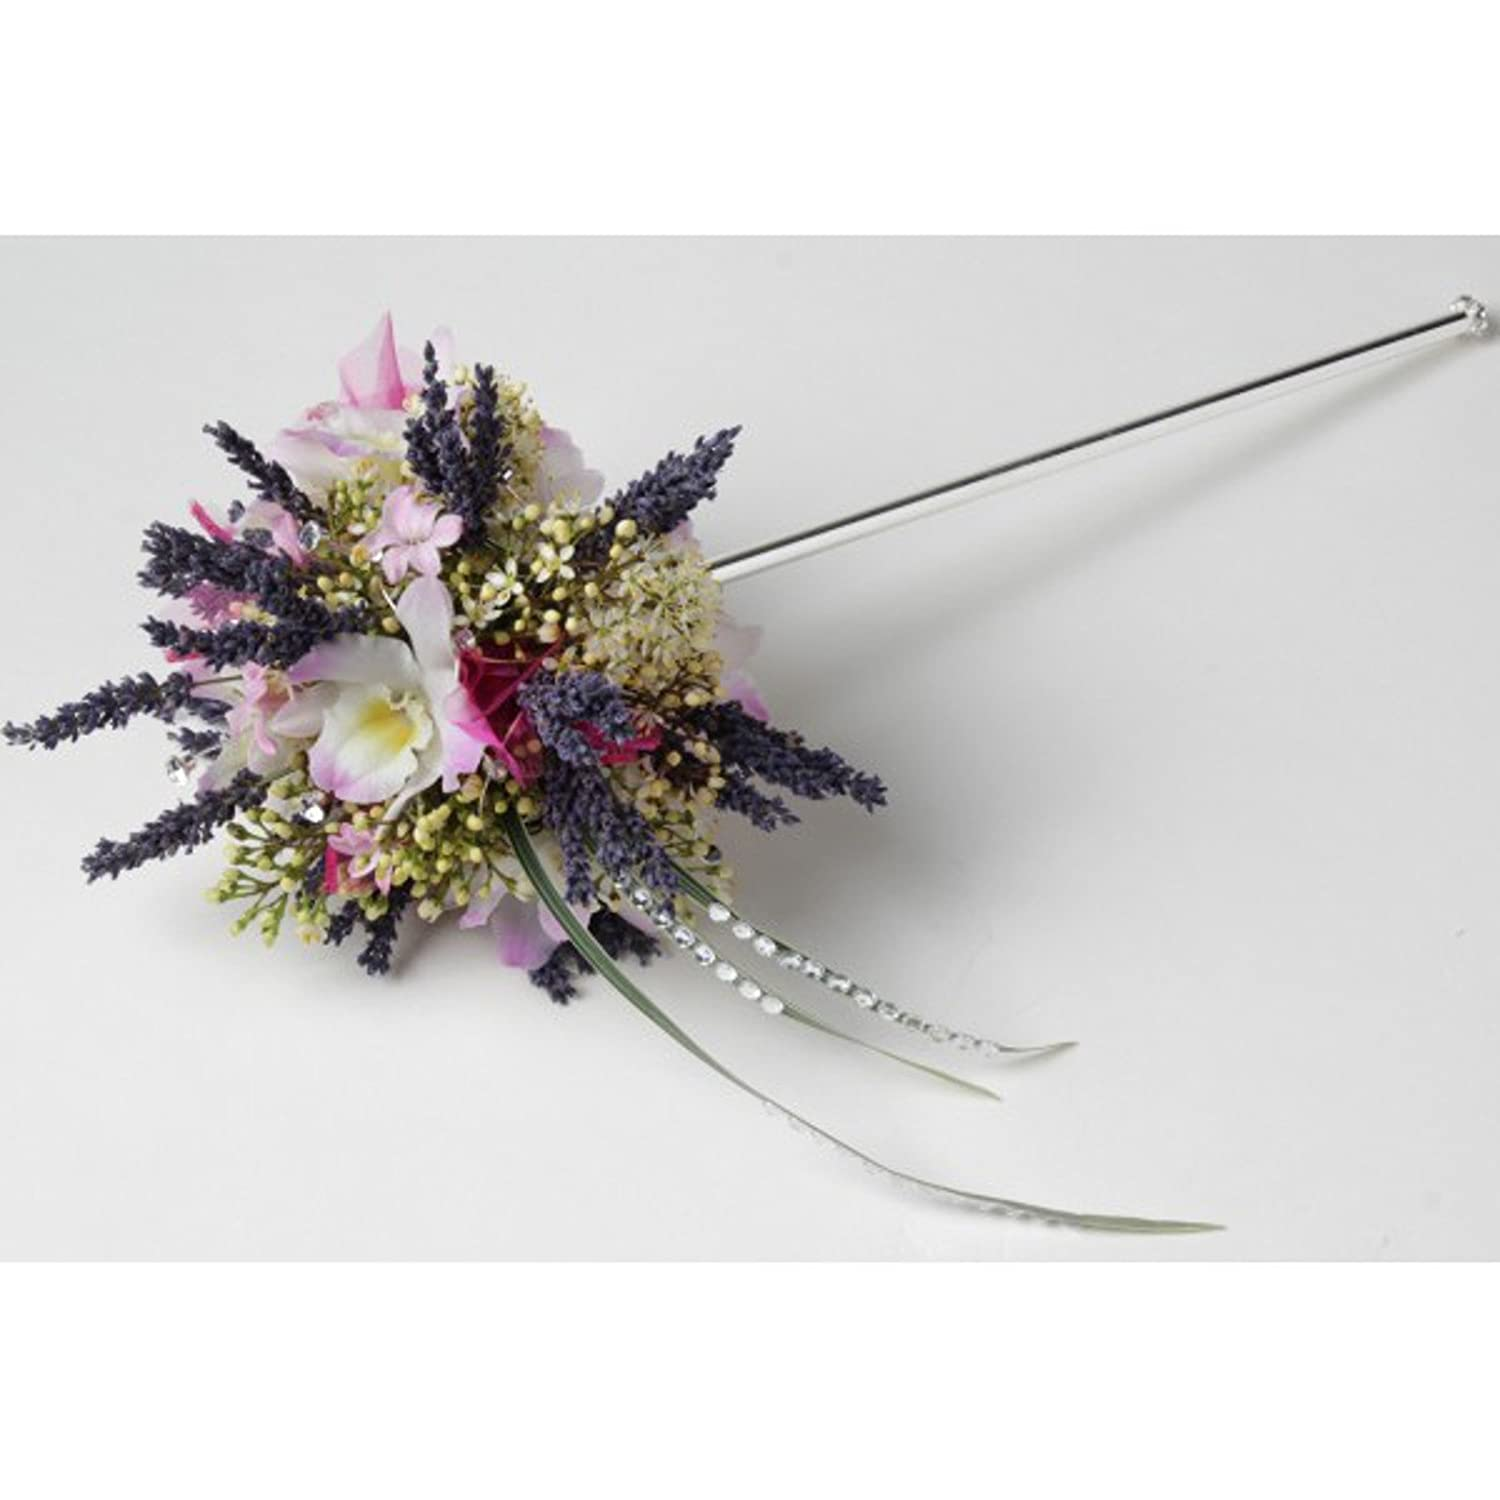 Lotus Wand Corsage Creations 35cm long Silver